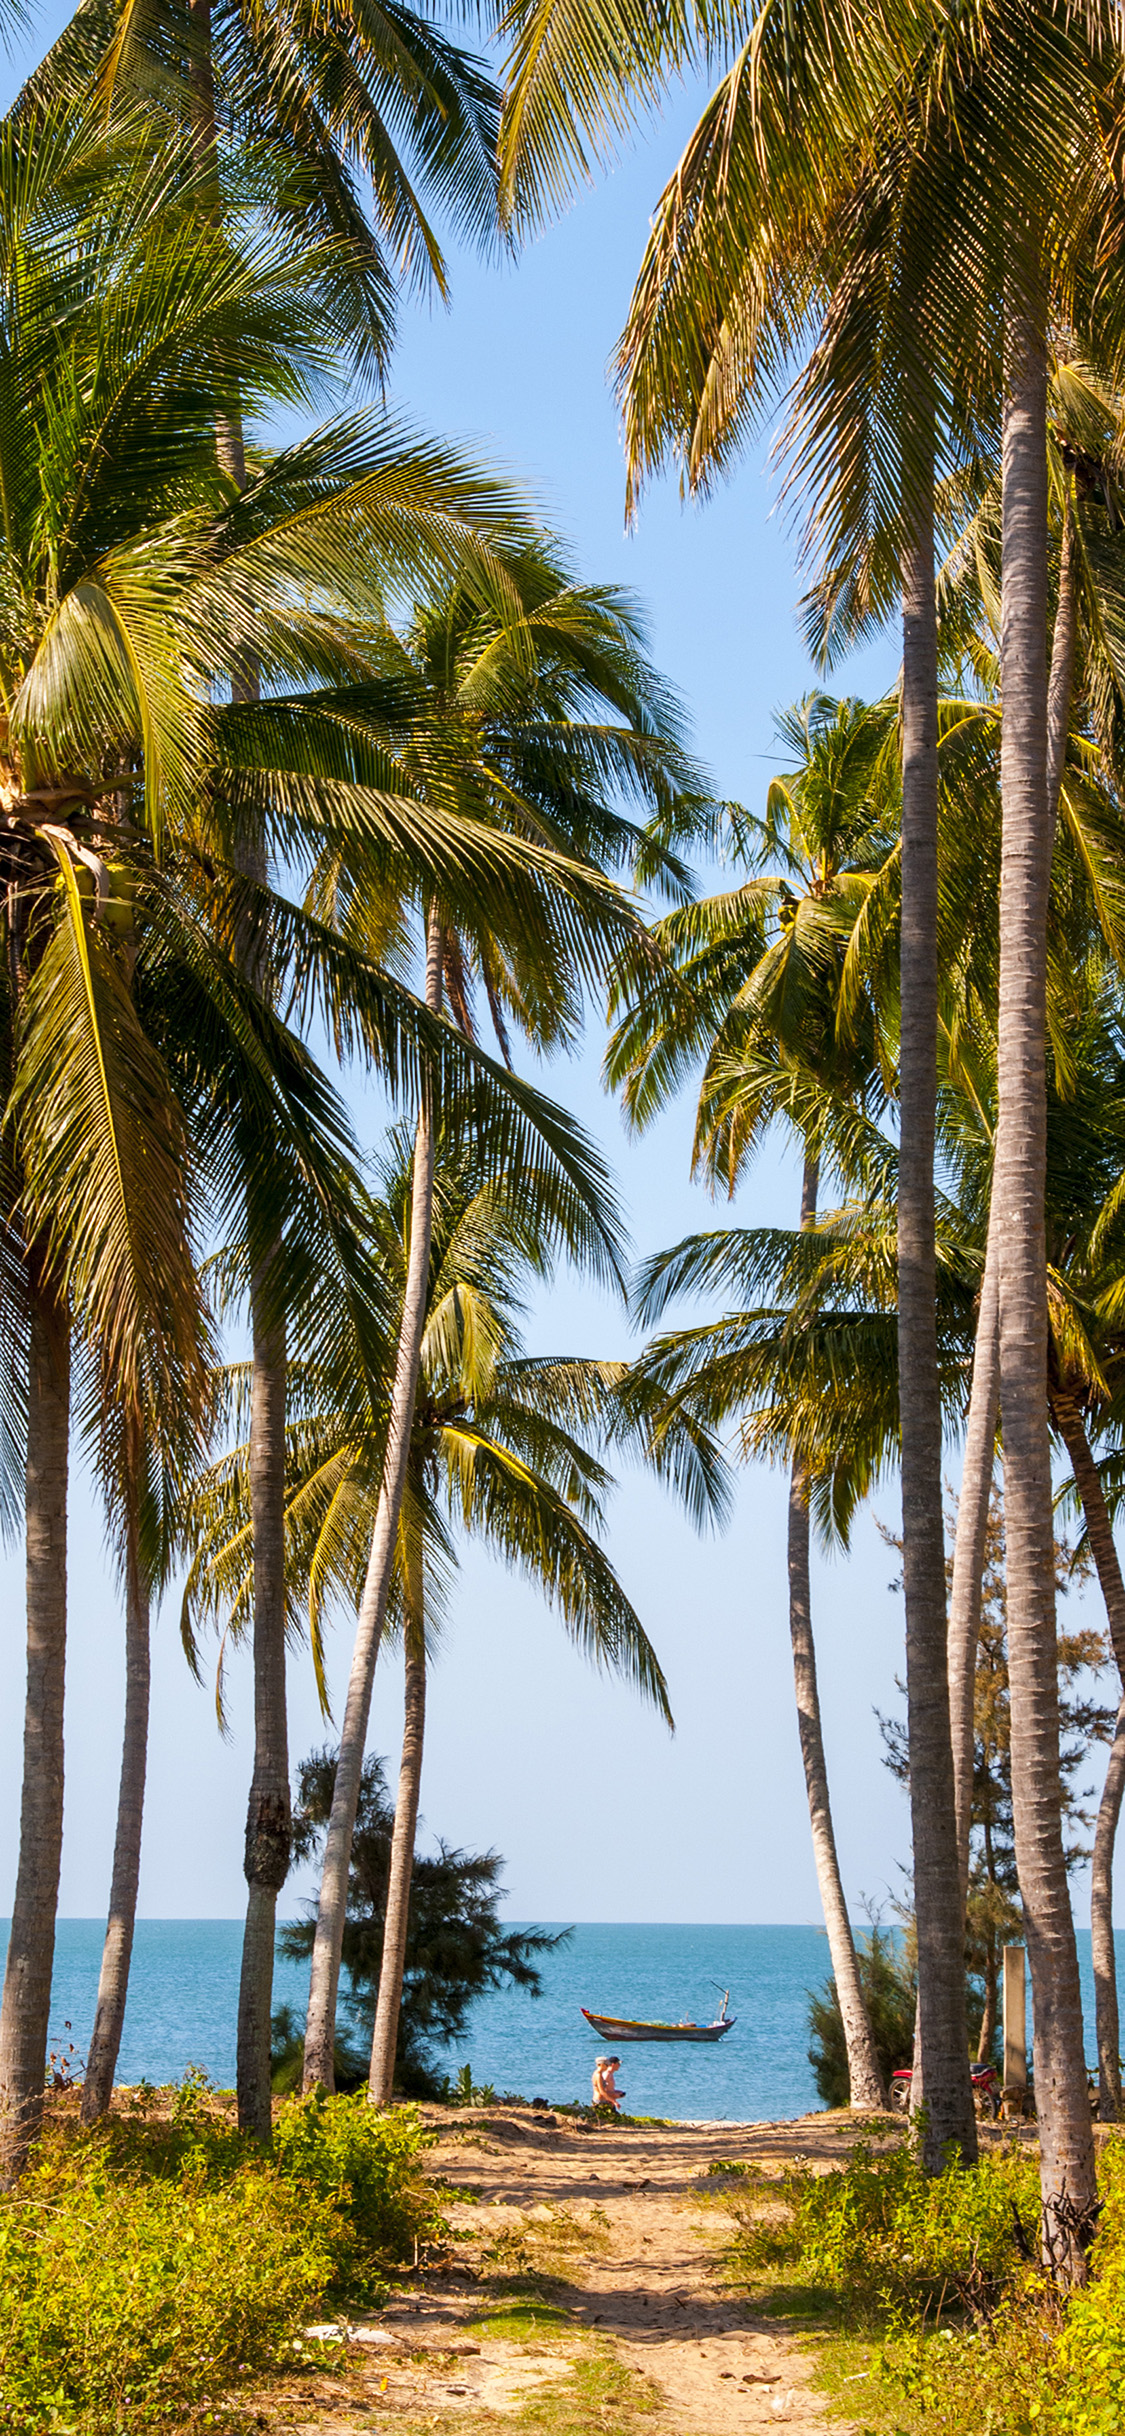 Iphone X Wallpapers Palm Trees - HD Wallpaper